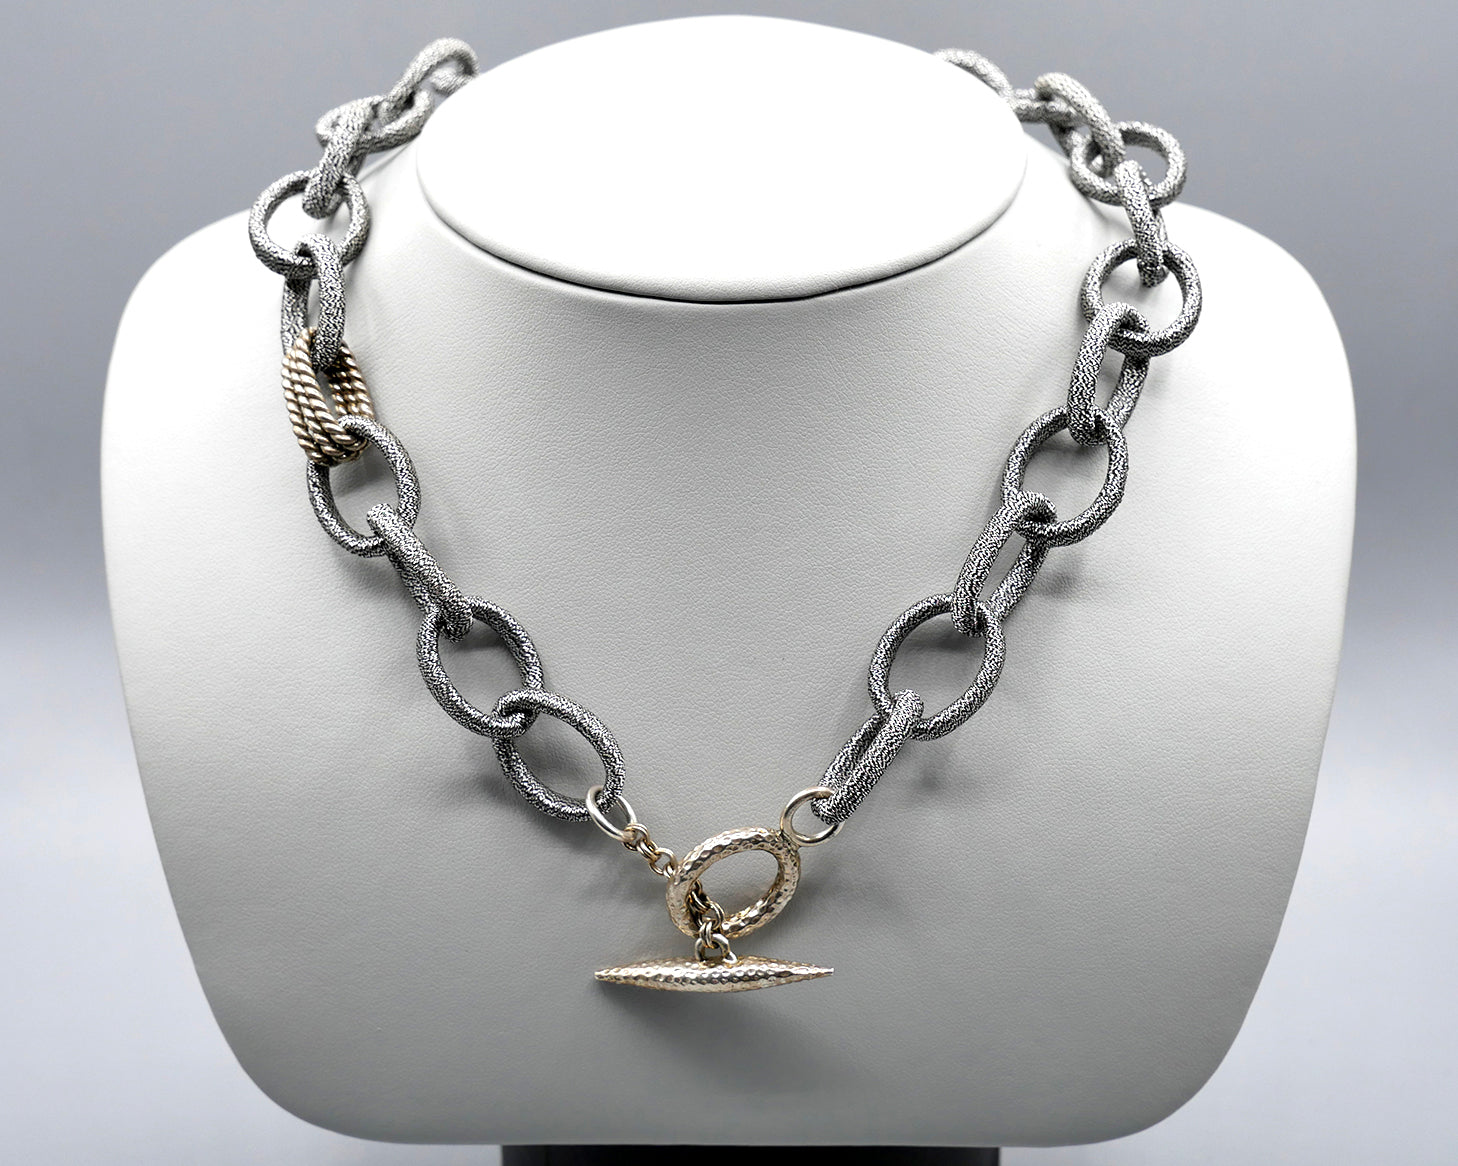 Silk Link Necklace- Metallic Gunmetal large link toggle necklace